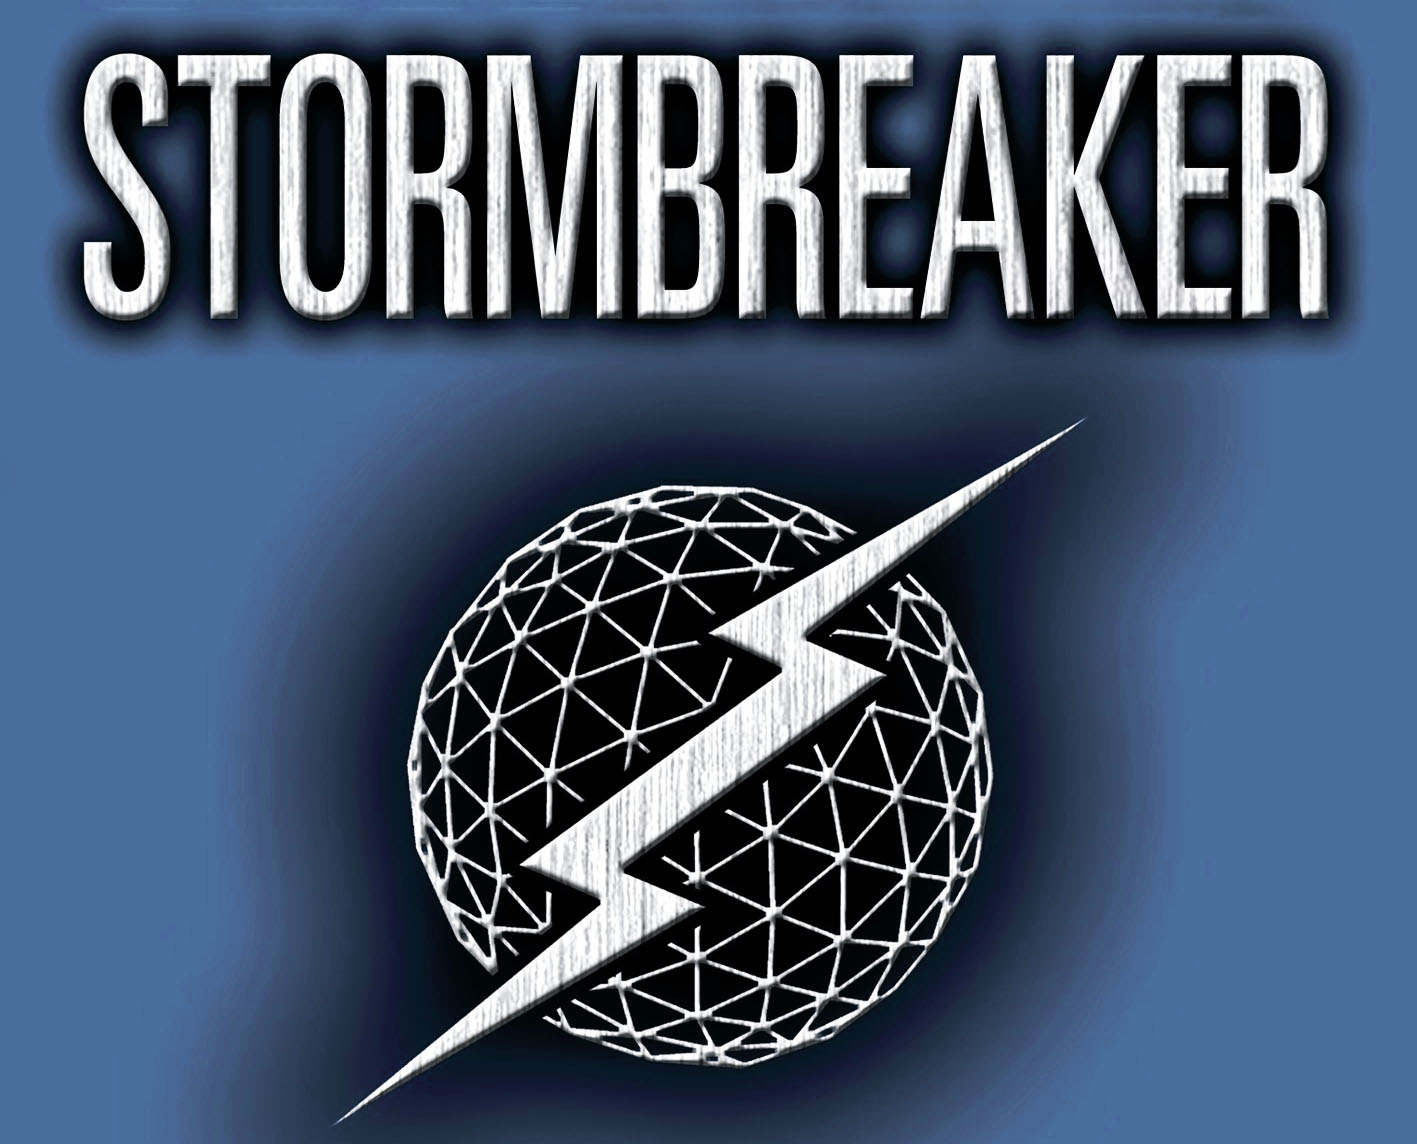 Stormbreaker Anthony Horowitz Alex Rider